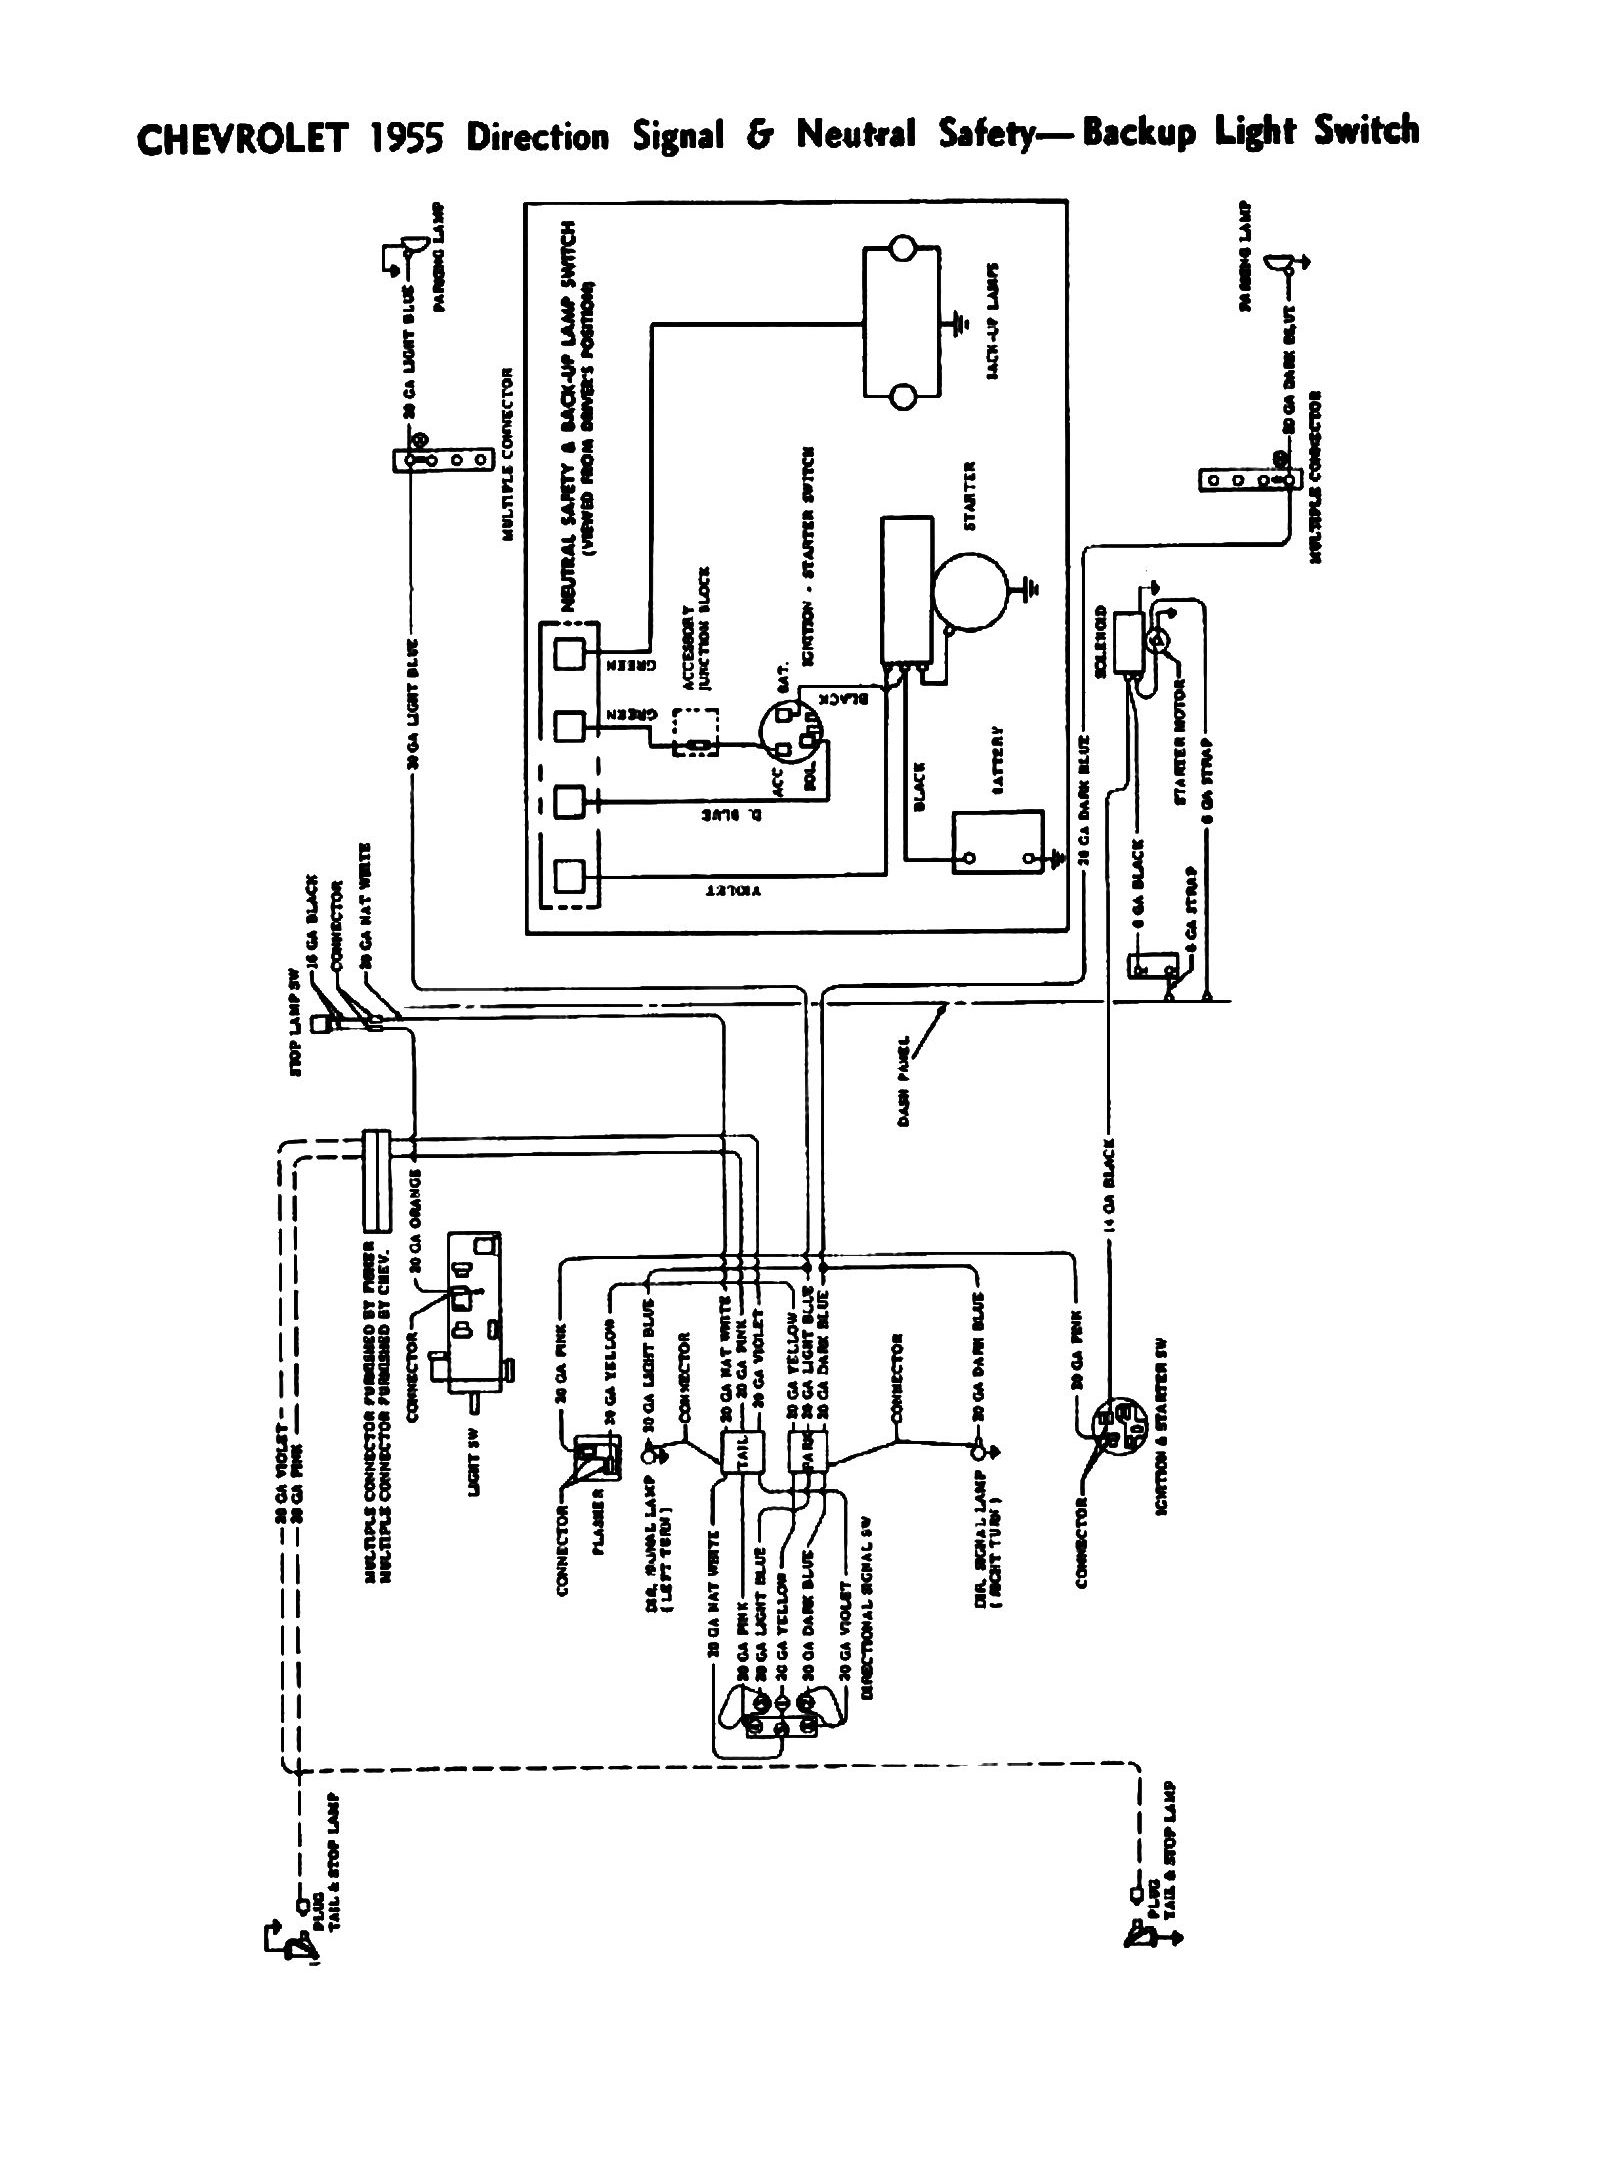 hight resolution of 1957 dodge wiring diagram completed wiring diagrams 1973 dodge wiring diagram 1937 dodge wire diagram wiring